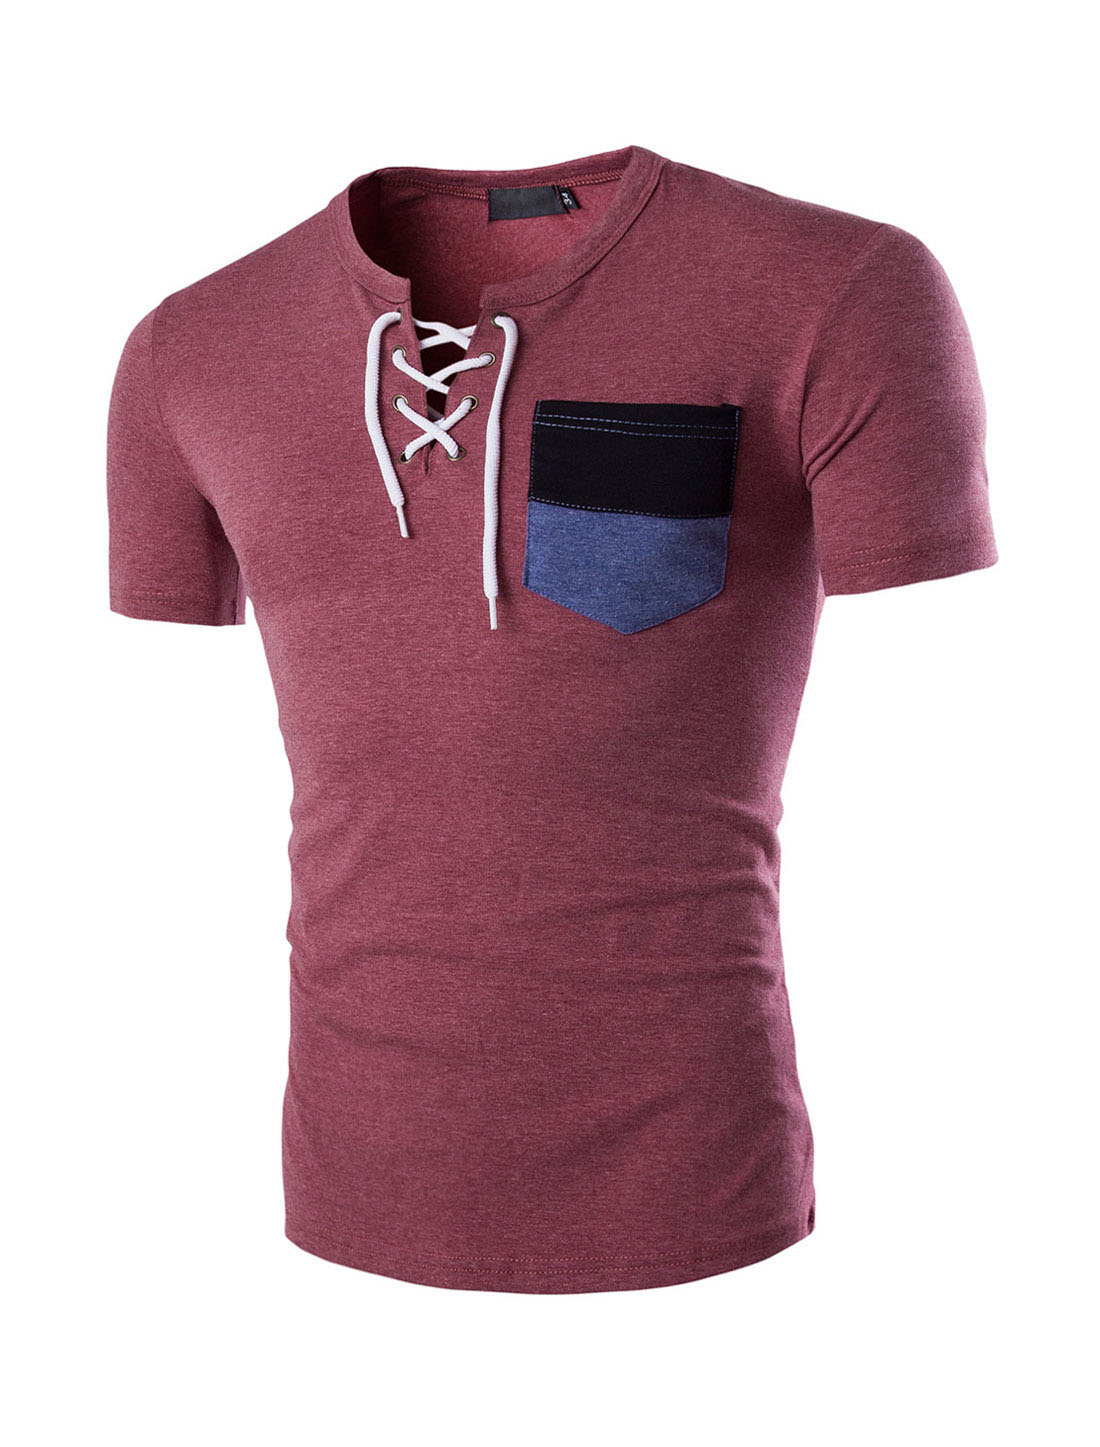 Men Round Neck Patch Pocket Short Sleeves T-Shirts Burgundy S